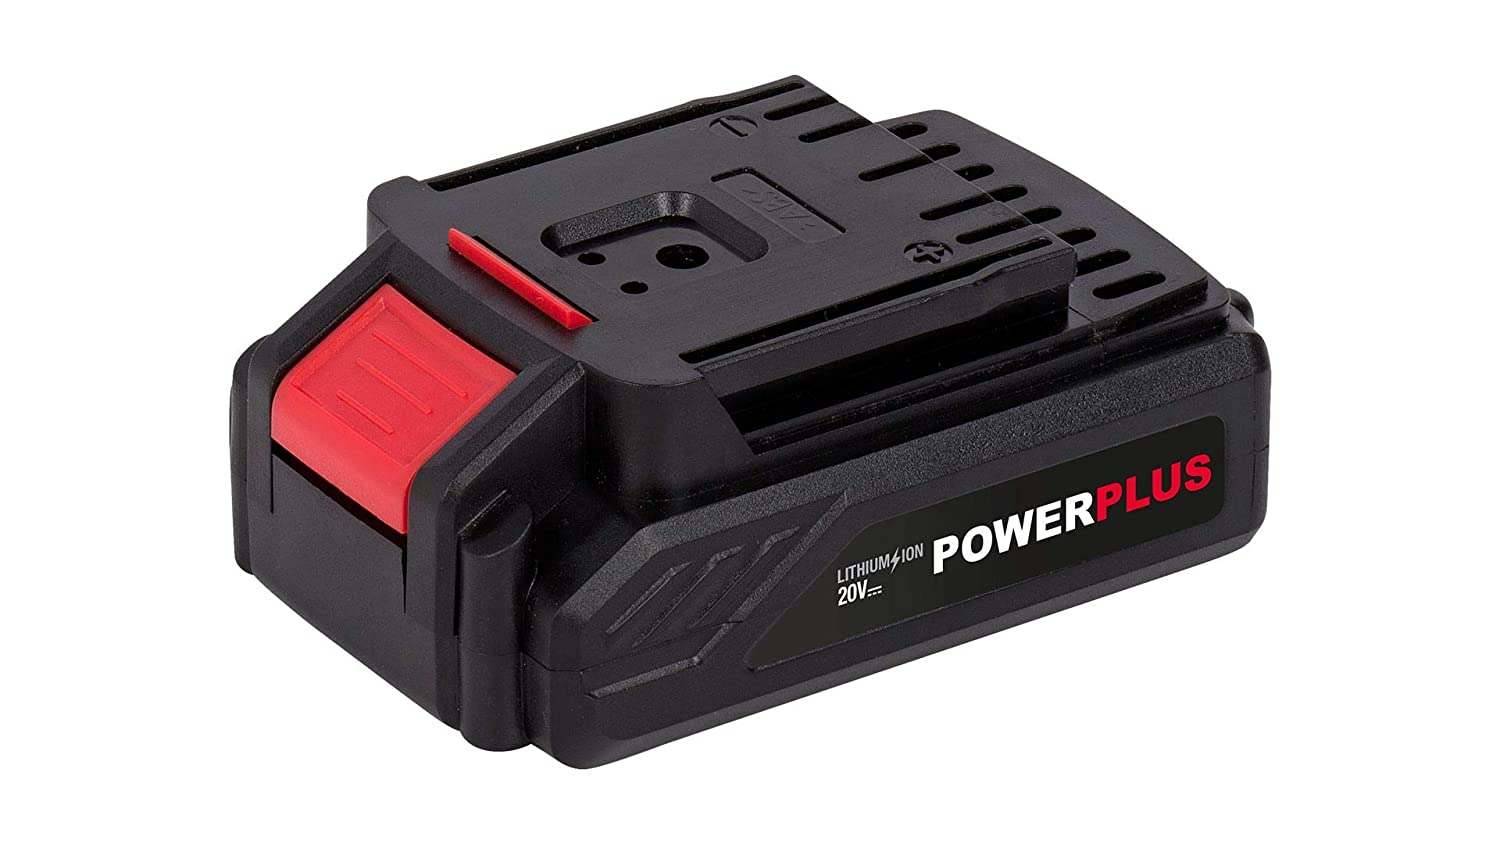 POWER plus POWC1071 - Taladradora (20 V, ion de litio), color gris: Amazon.es: Bricolaje y herramientas